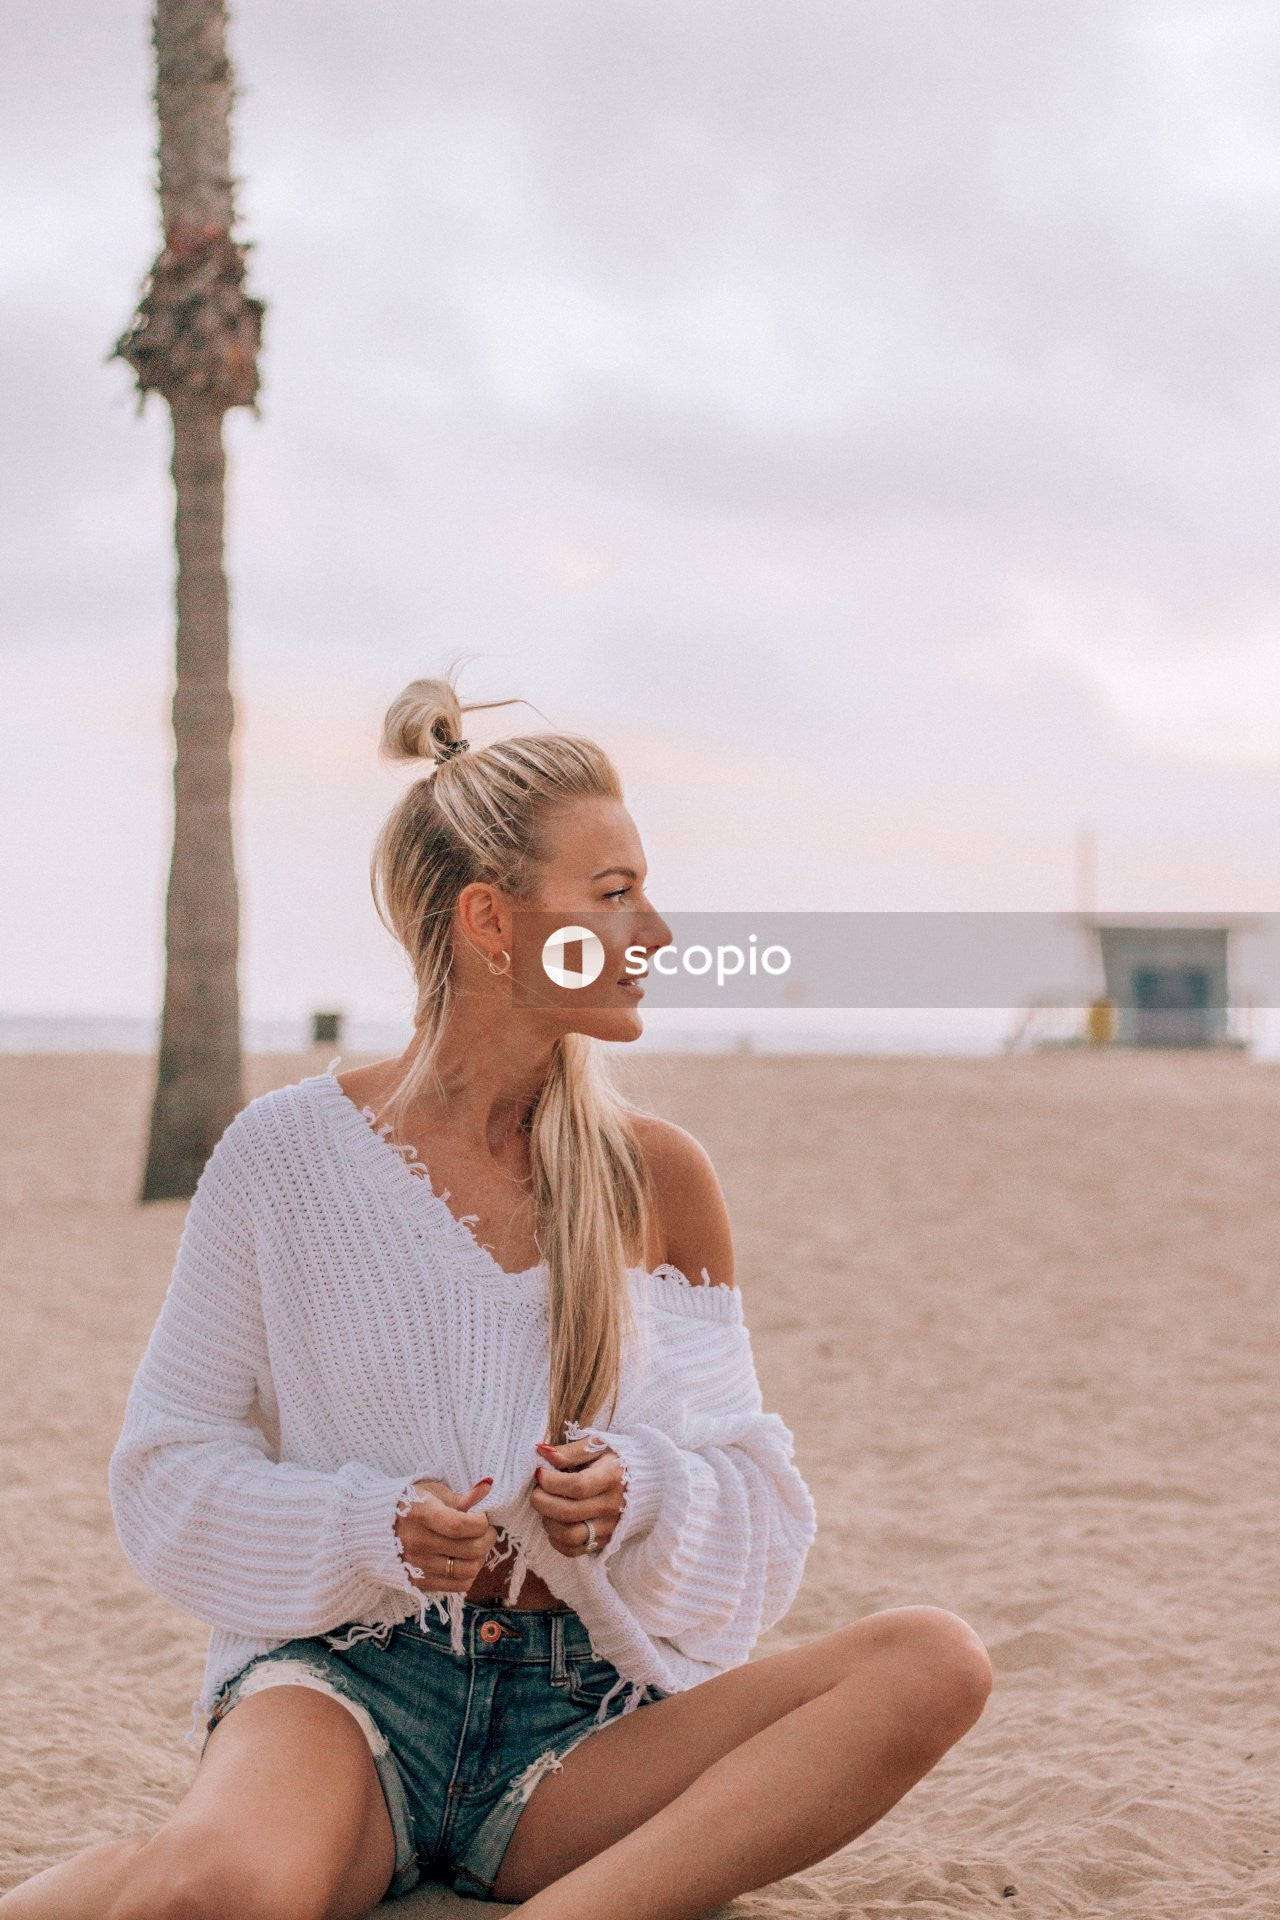 Woman in white knit sweater standing on beach